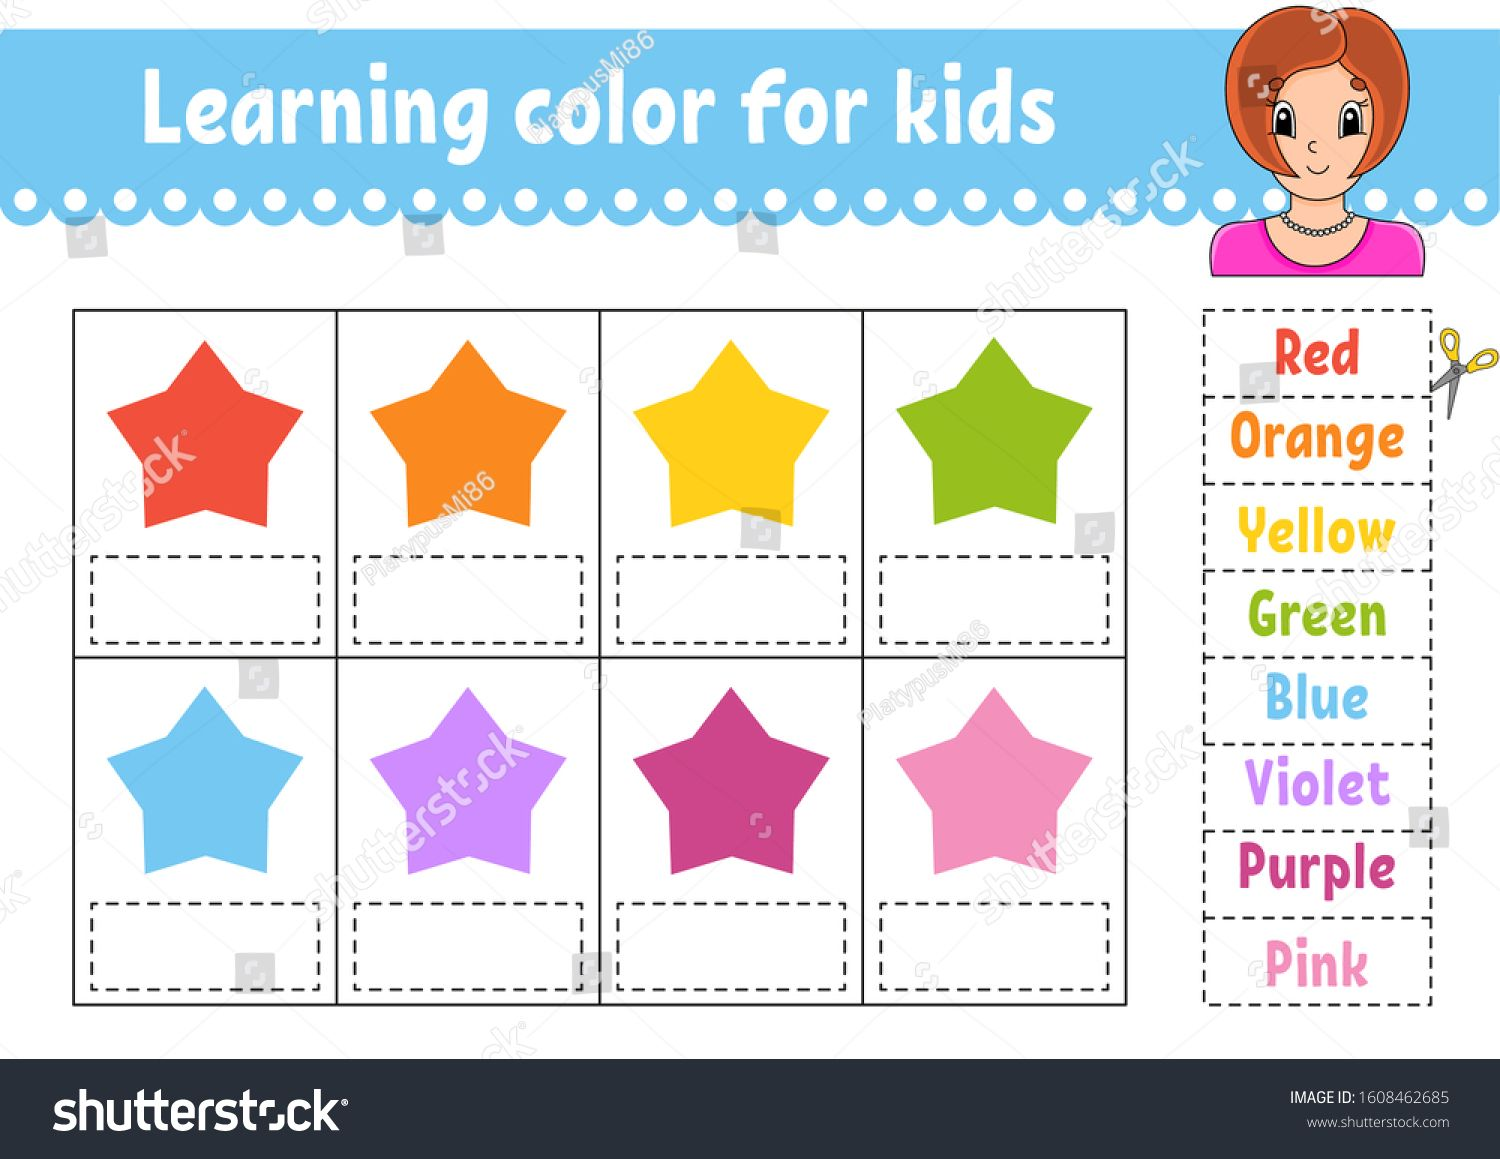 Learning Color For Kids Education Developing Worksheet